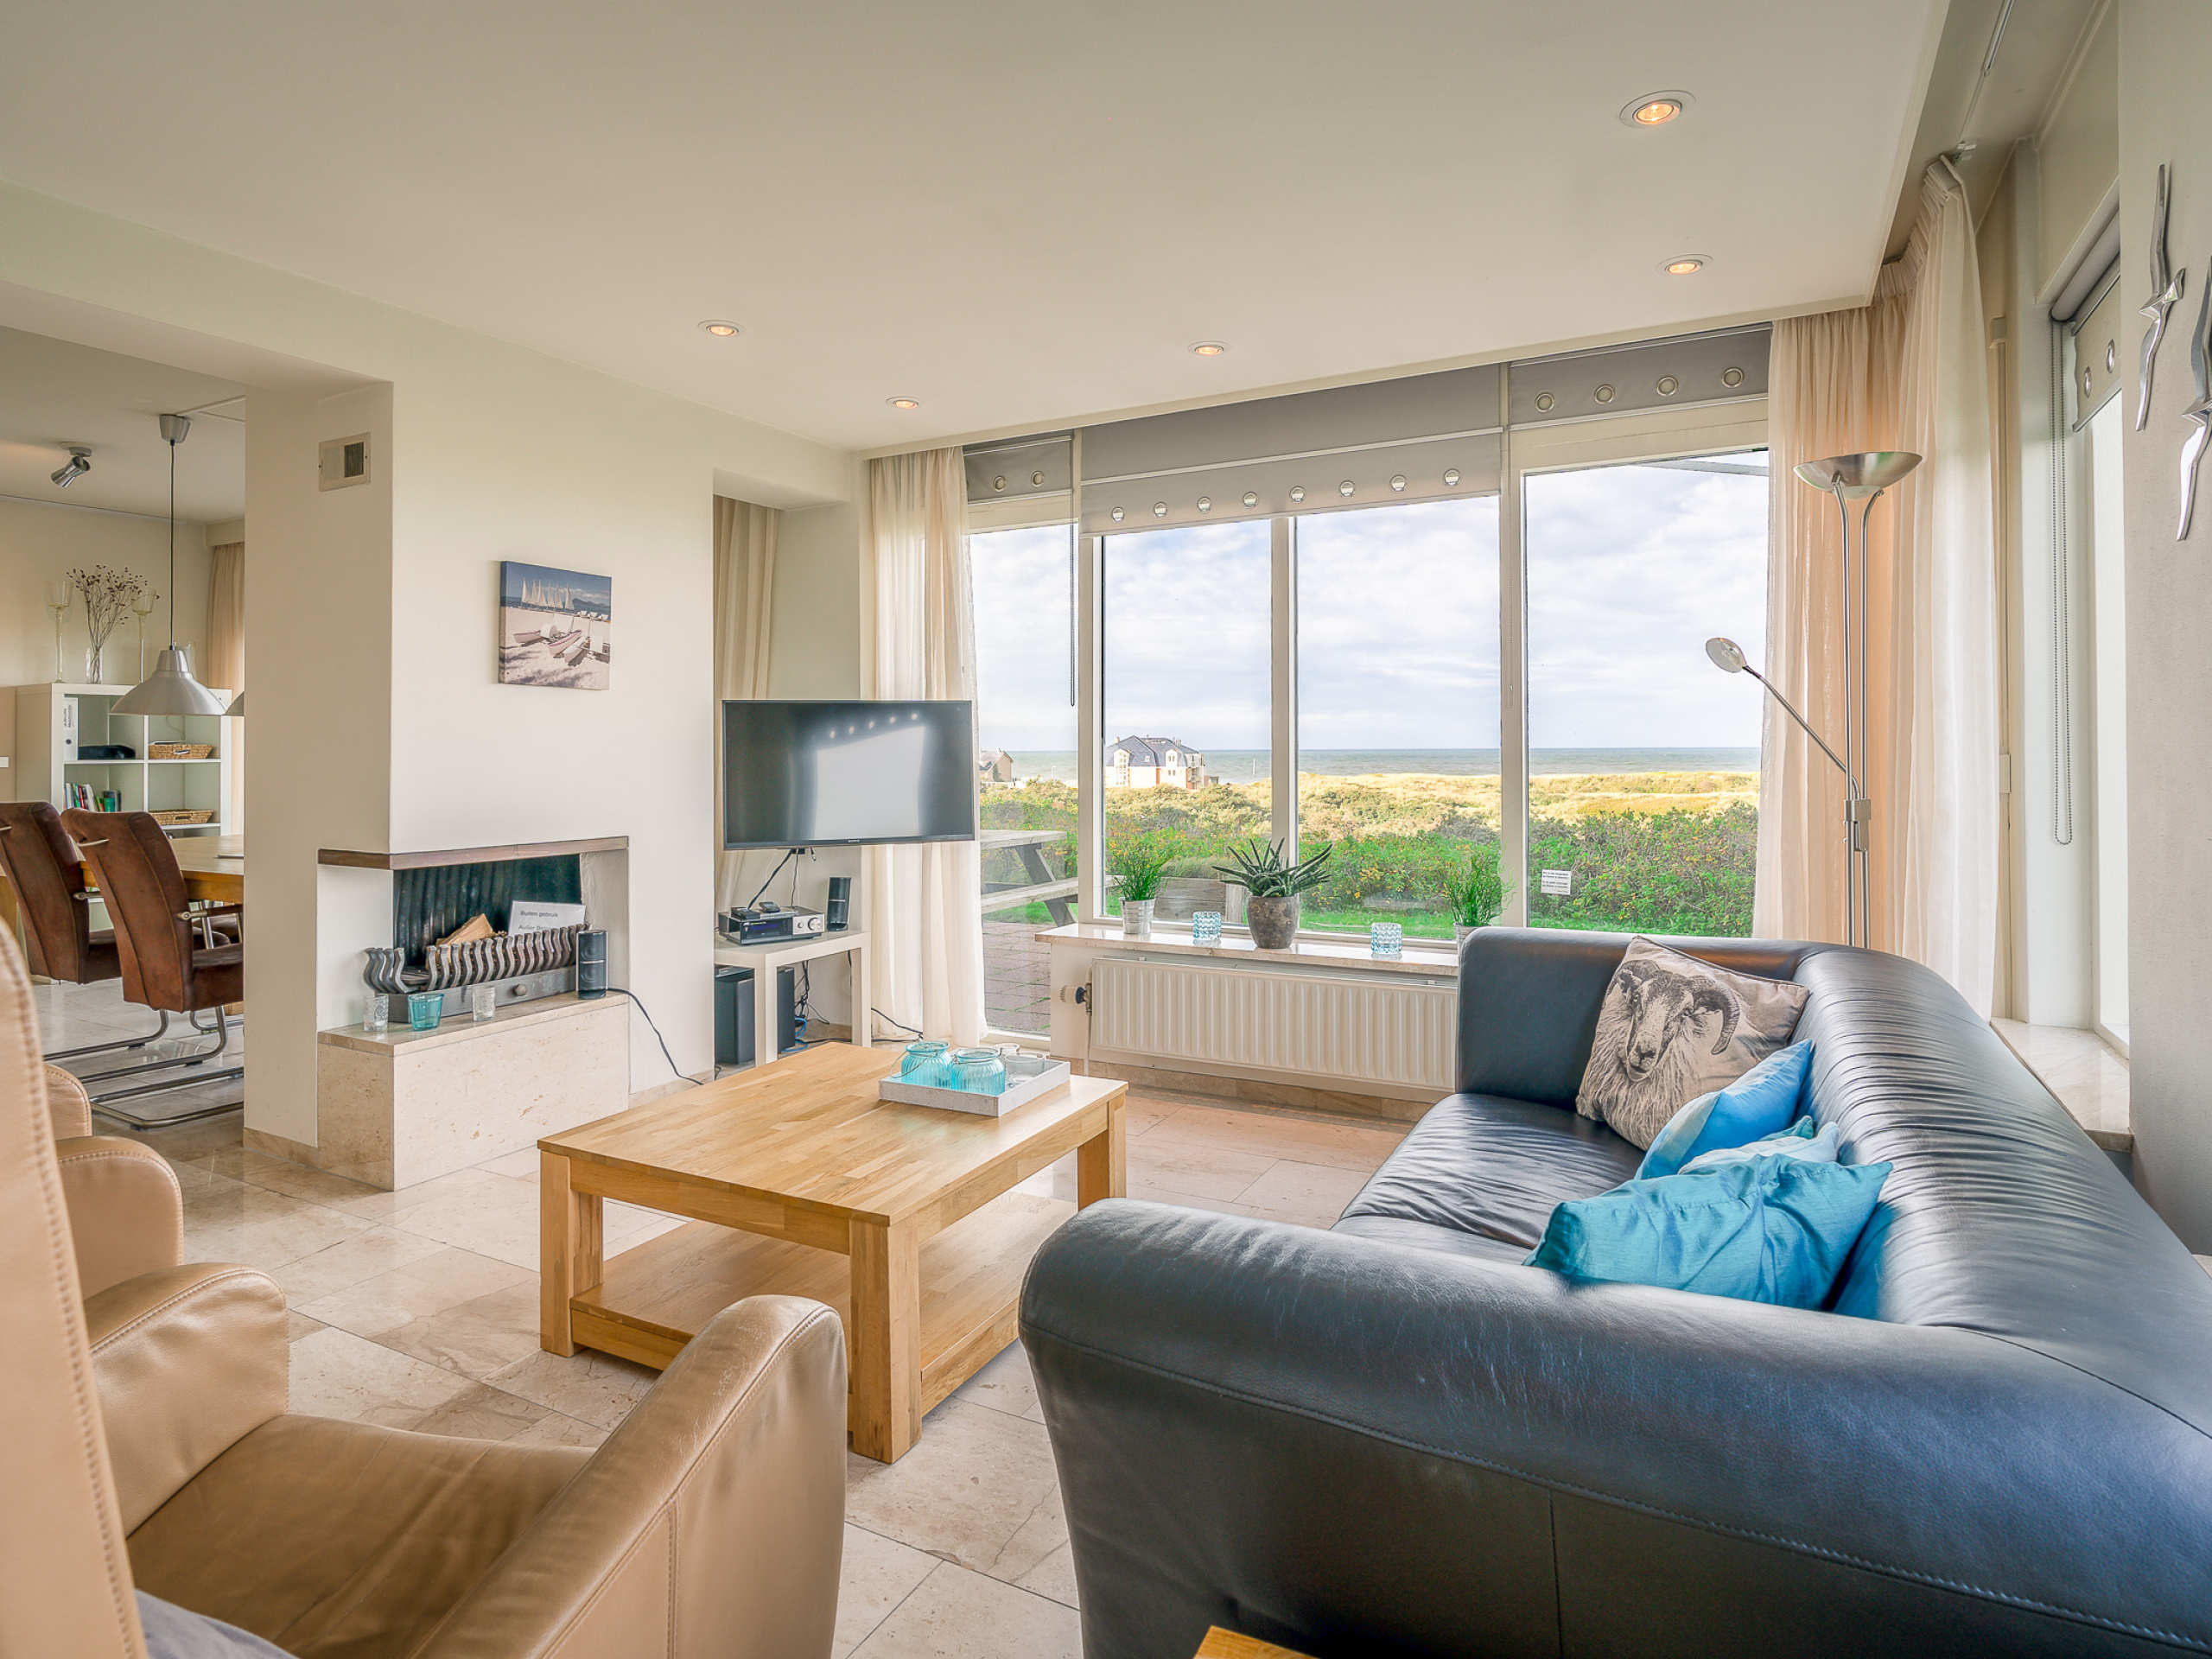 Apartment in a complex on the highest dune in Texel